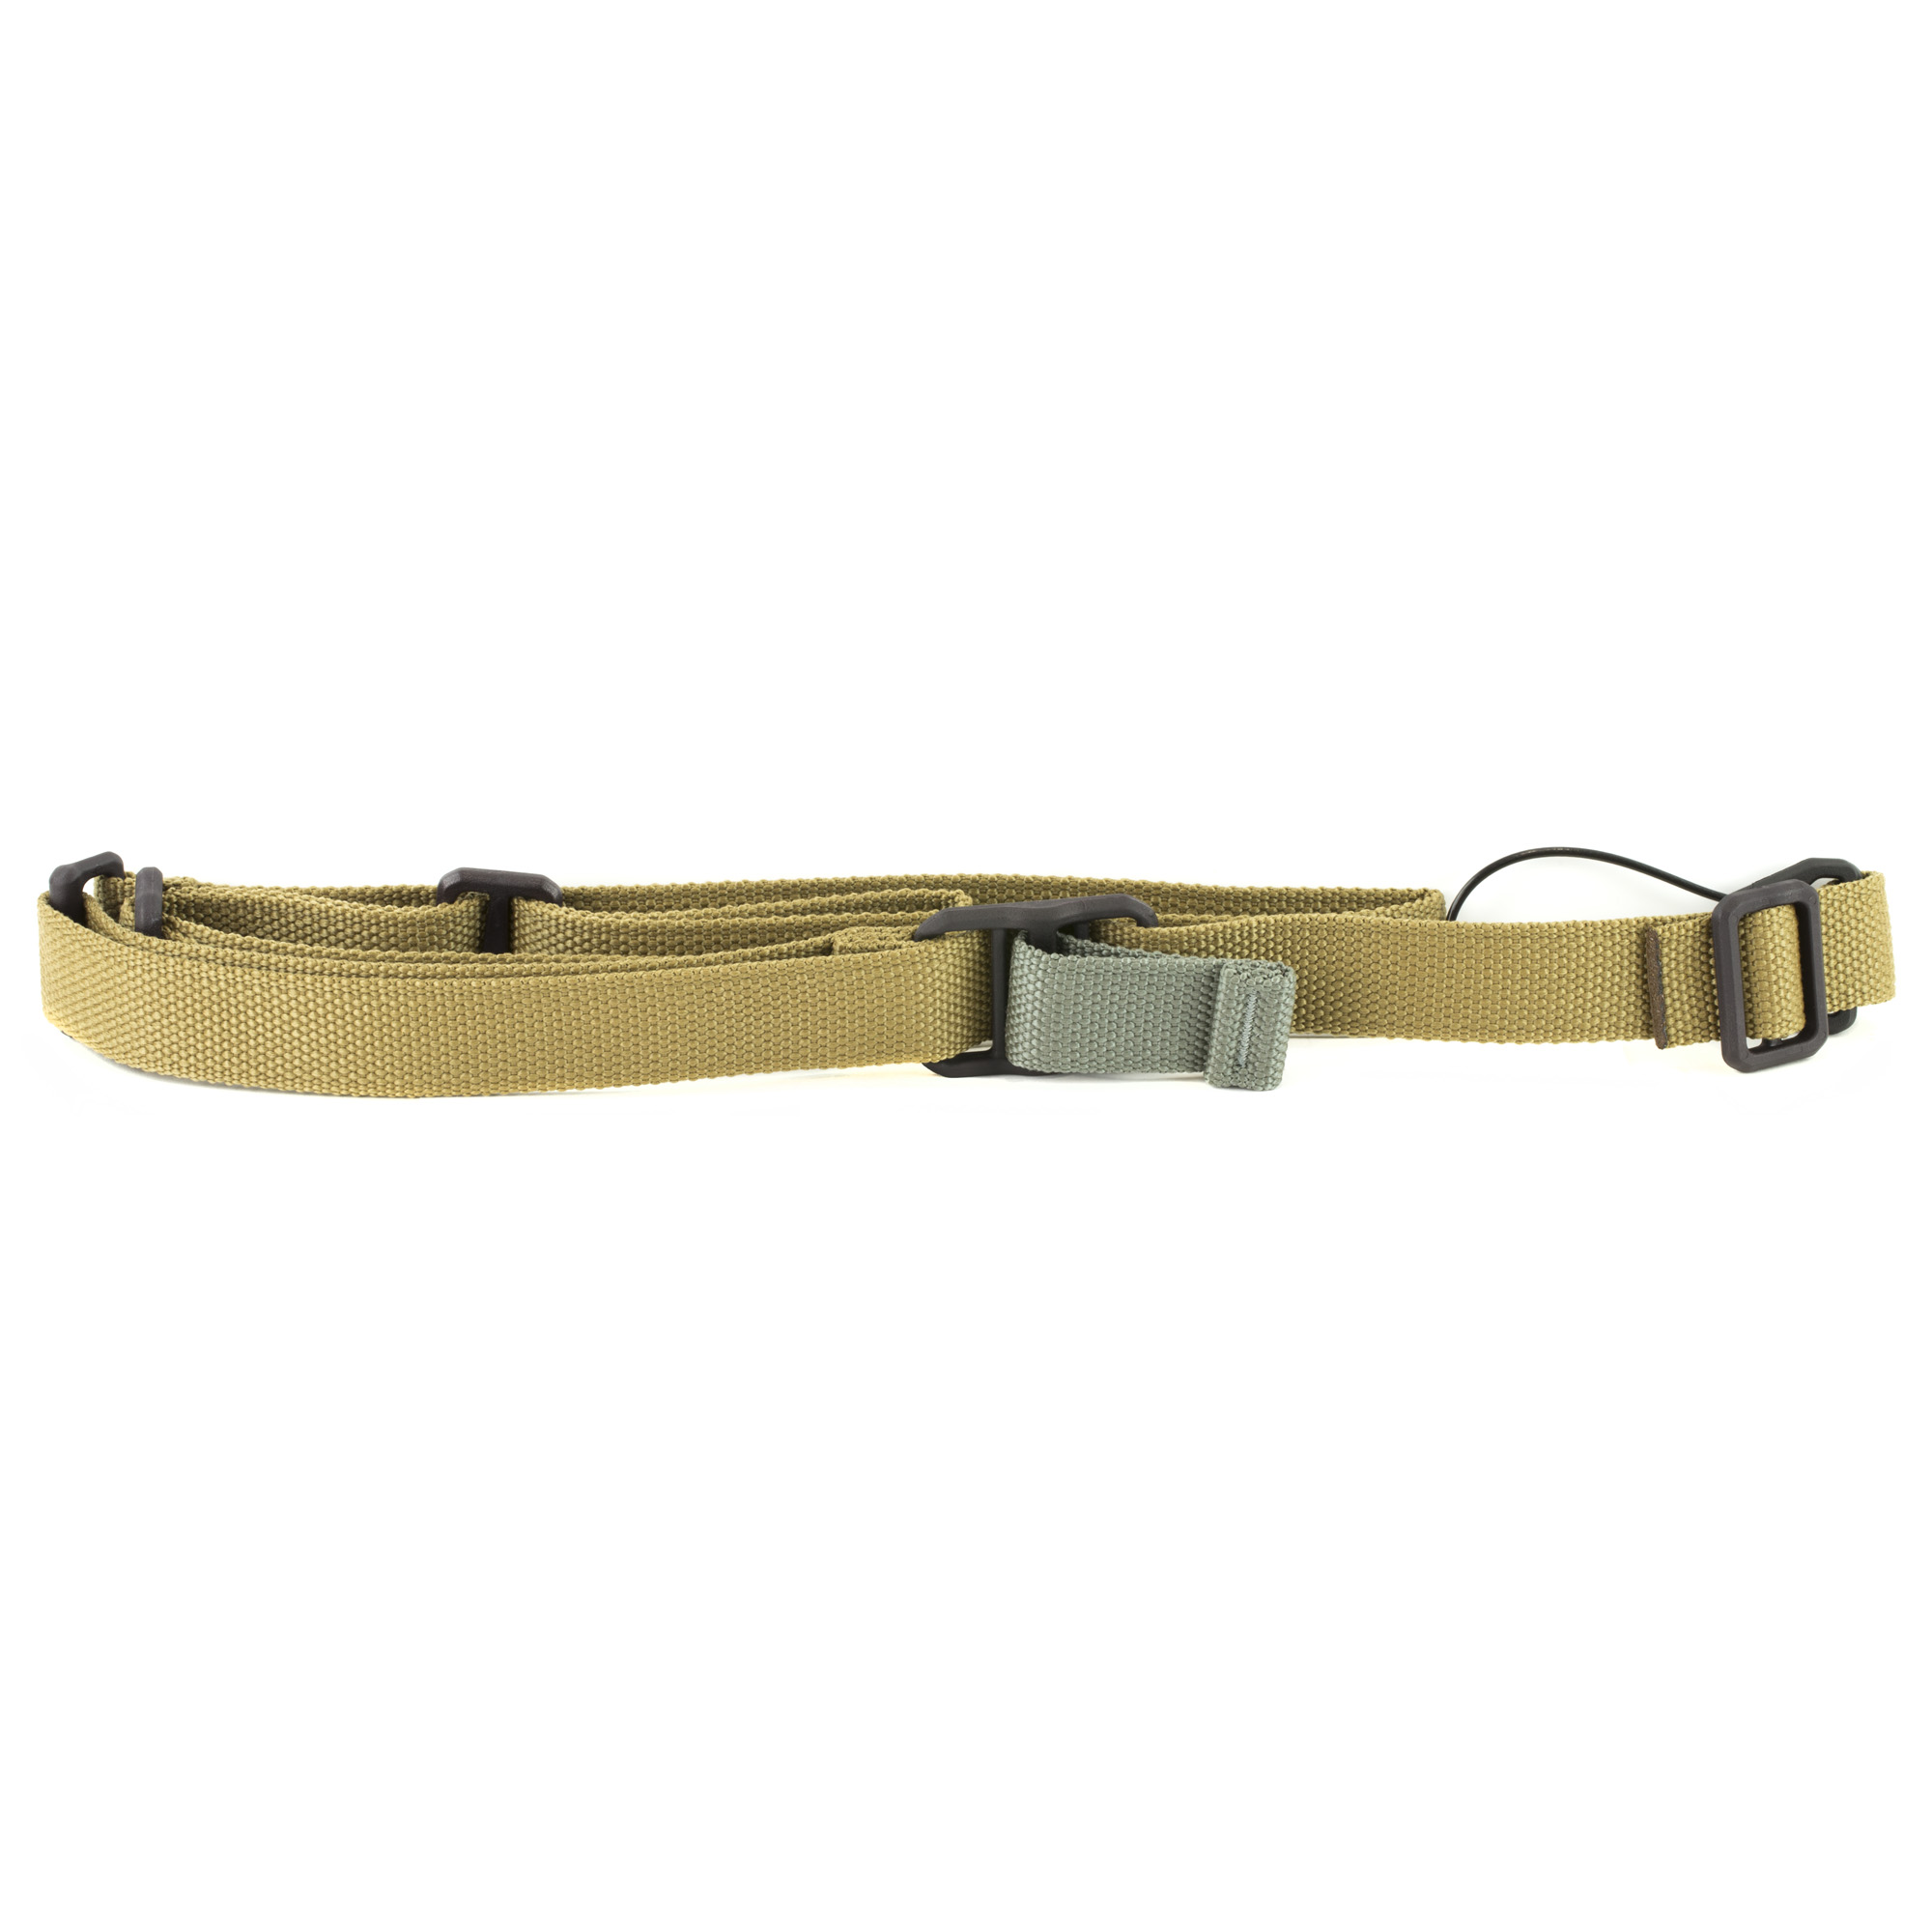 """The Standard AK Sling was designed from the ground up to be the perfect sling for the world's most prolific small arm to match the qualities of the AK - simple"""" durable"""" functional"""" and economical. If you have been long dissatisfied with the issue canvas strap or can't seem to get commercial slings to fit right"""" this sling is for you. The Standard AK sling is what you want for your AK-47"""" AK-74"""" or other AKM Style Rifles. Blue Force Gear started with the Vickers Sling(TM) platform used by good guys the world over. With over 200""""000 in use with the US military"""" the Vickers Sling with its quick adjust technology has a track record of being combat proven. Like the Vickers Sling"""" the Standard AK Sling can be instantly lengthened and shortened with no sling tail to get caught or parts to break. This allows close"""" secure weapon retention that can be carried all day"""" but instantly lengthened to be shouldered and fired without removing the weapon or untangling the sling. The Standard AK Sling comes with a Molded Universal Wire Loop(TM) threaded onto the front of the sling. Perfectly suited for the AK"""" the UWL(TM) attaches to the elongated eyelet on handguard retainer or gas block quietly and securely with nylon coated aircraft grade stainless steel cable. The UWL can also be passed through underneath the gas tube for left hand installation. The UWL is threaded on the front and can be removed for a more custom application."""